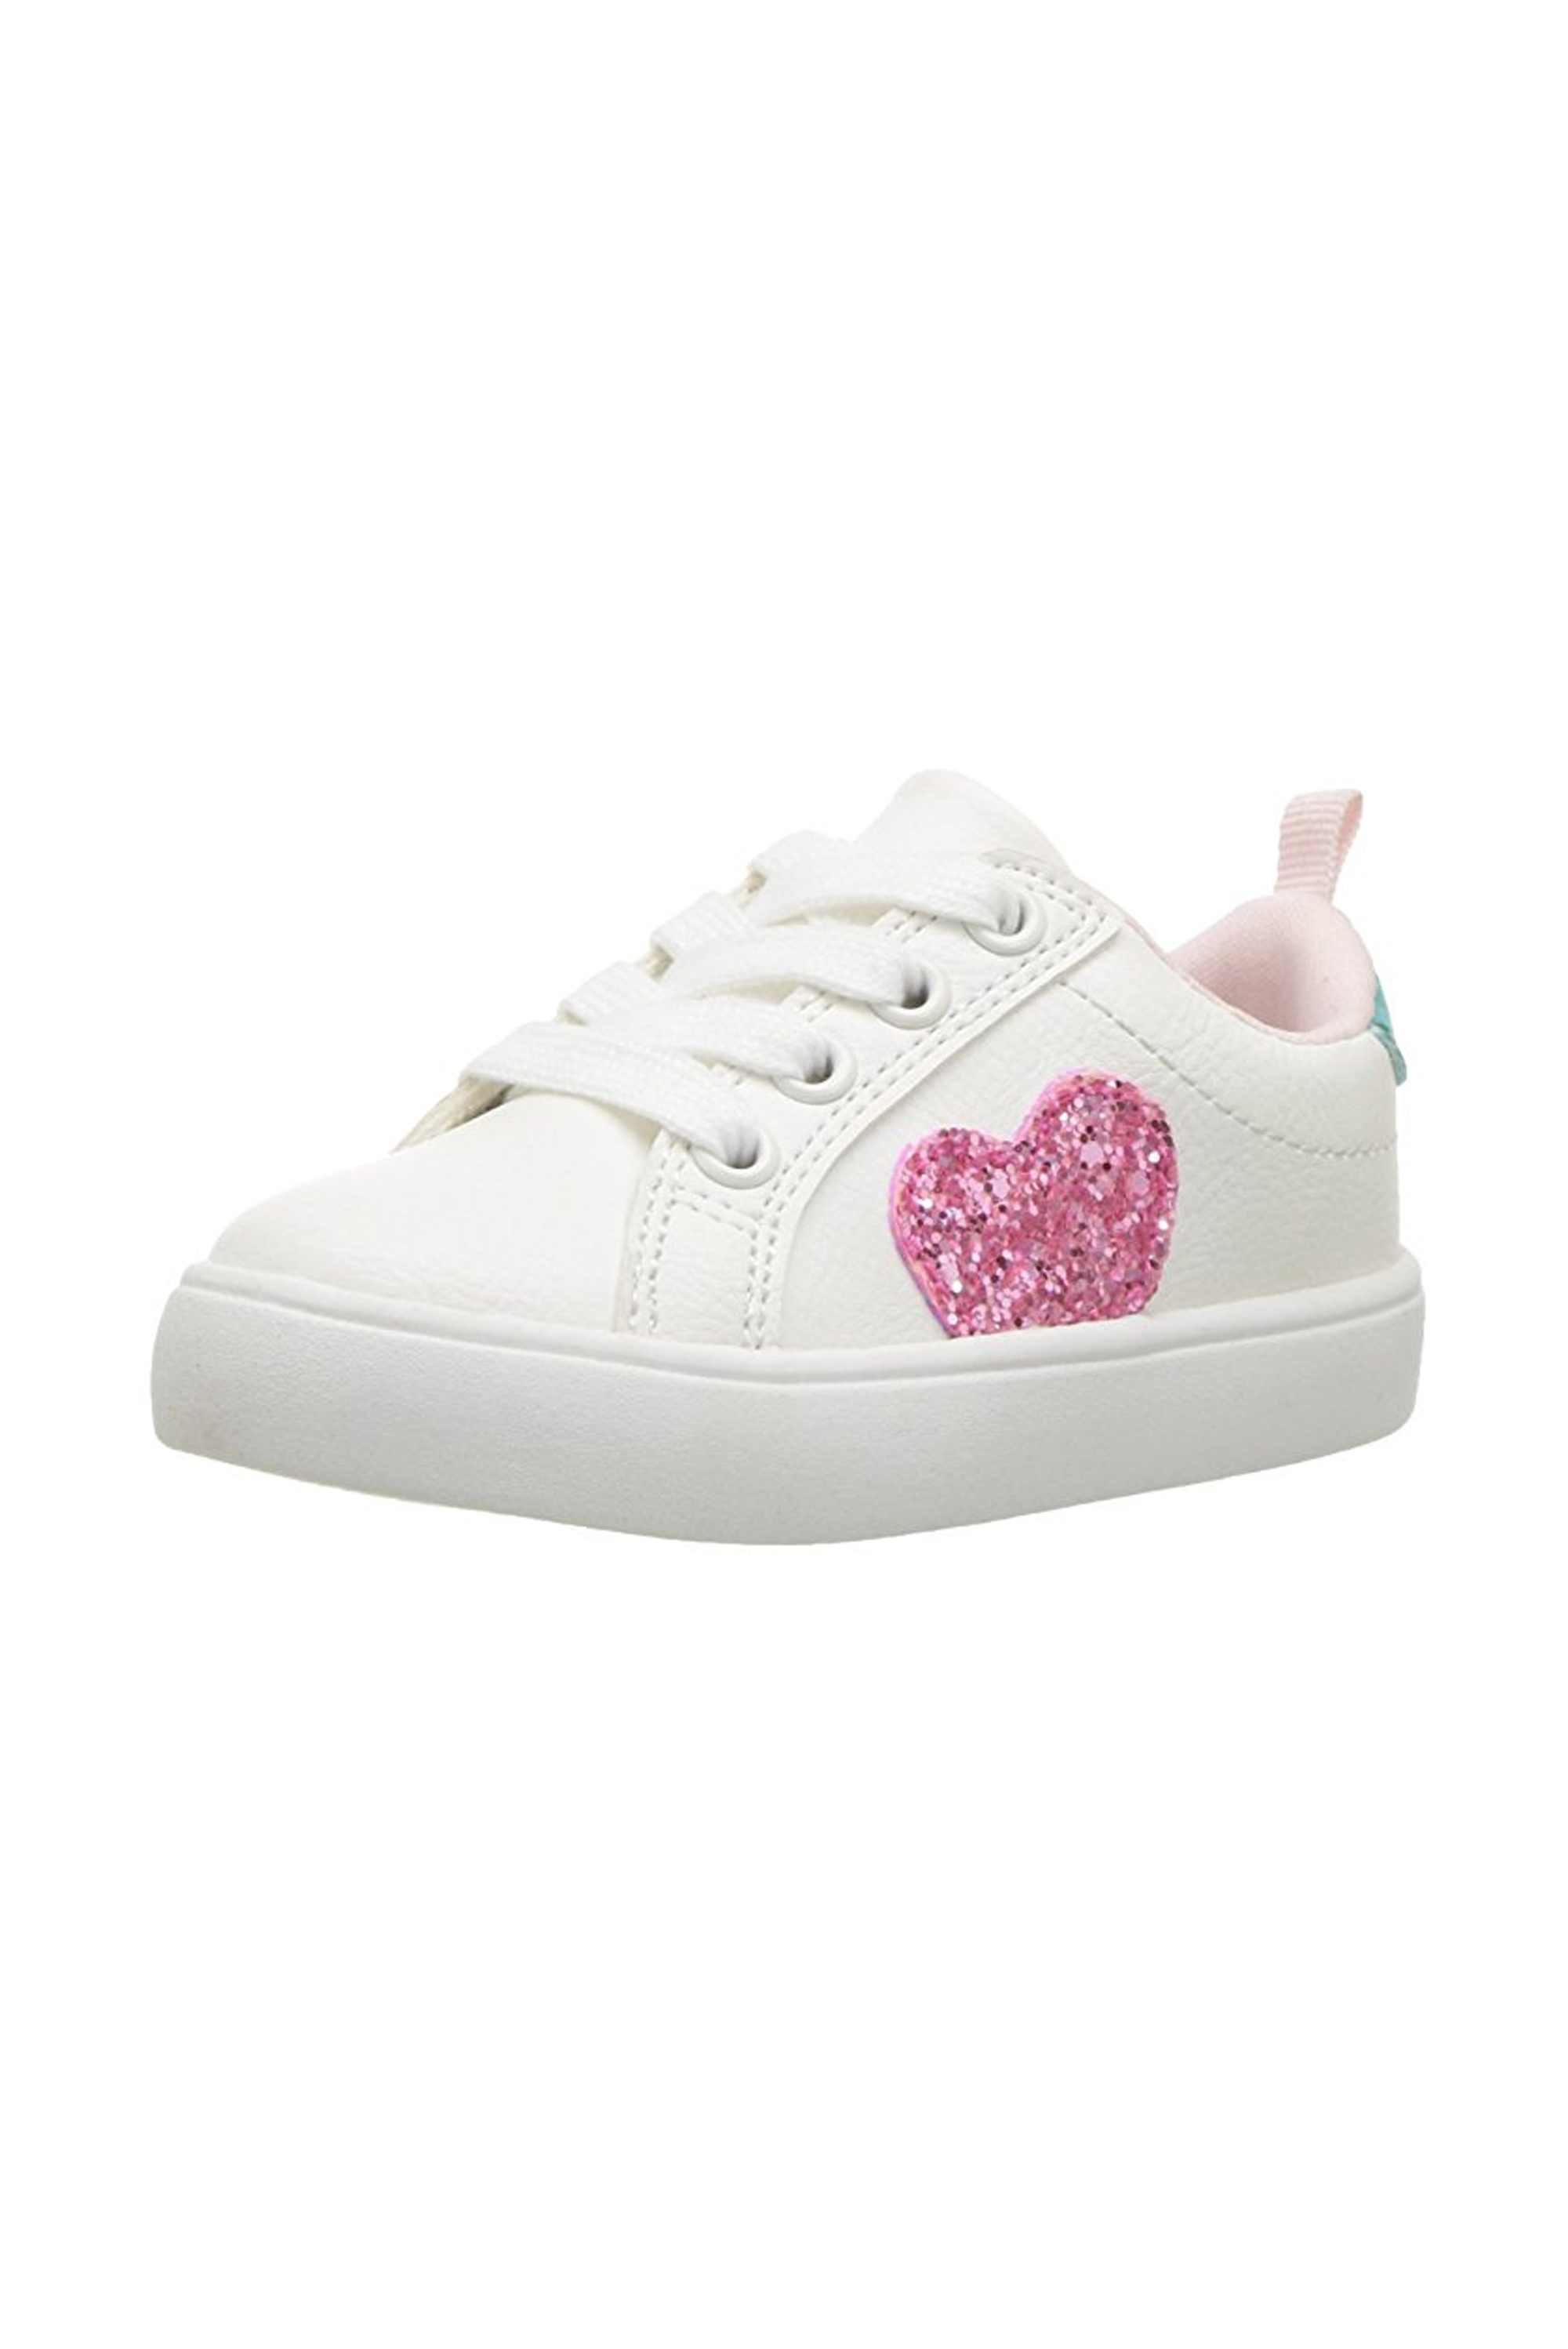 best kids shoes carters girls